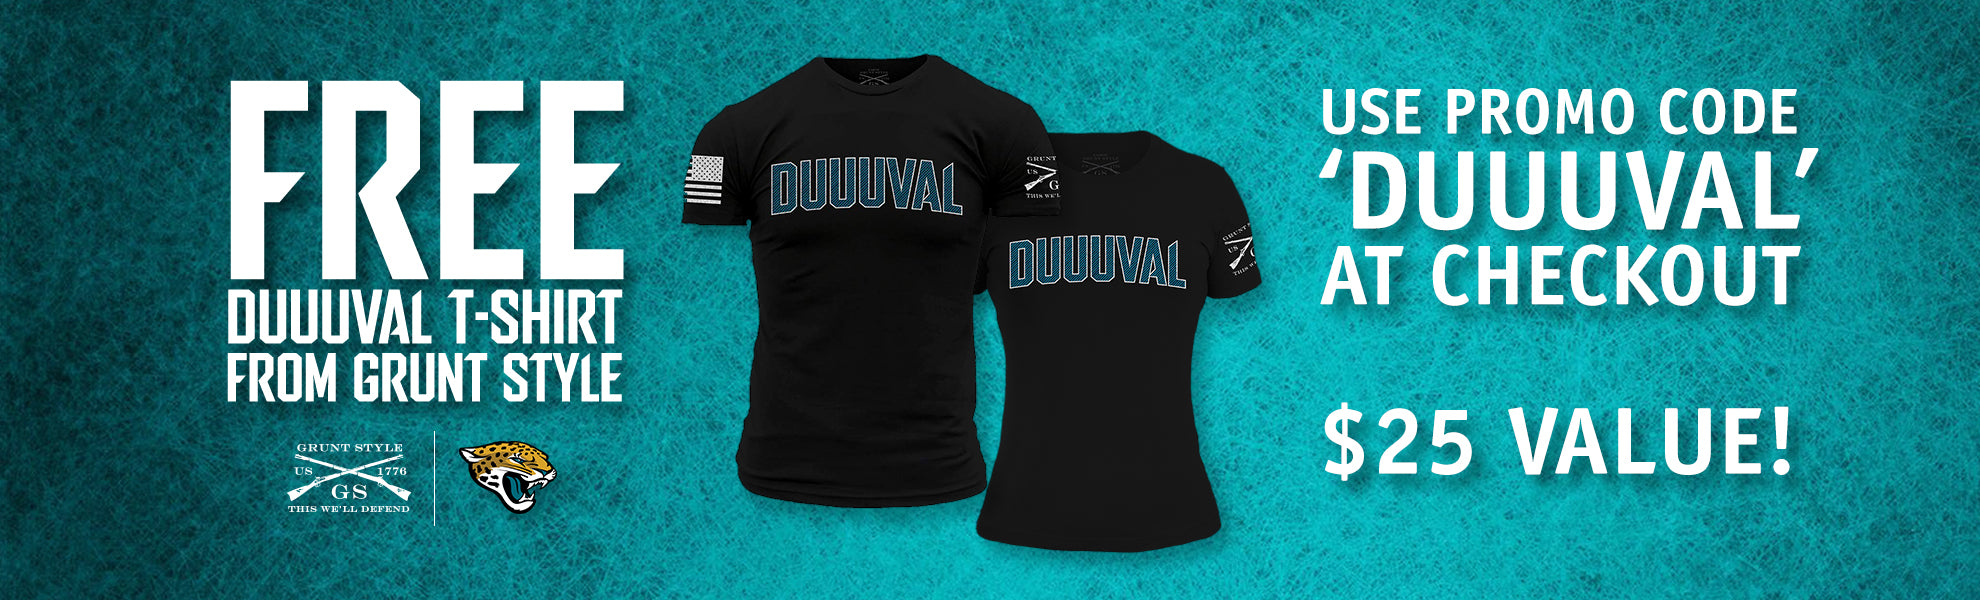 outlet store bed65 2ee11 Free Grunt Style T-shirt promo